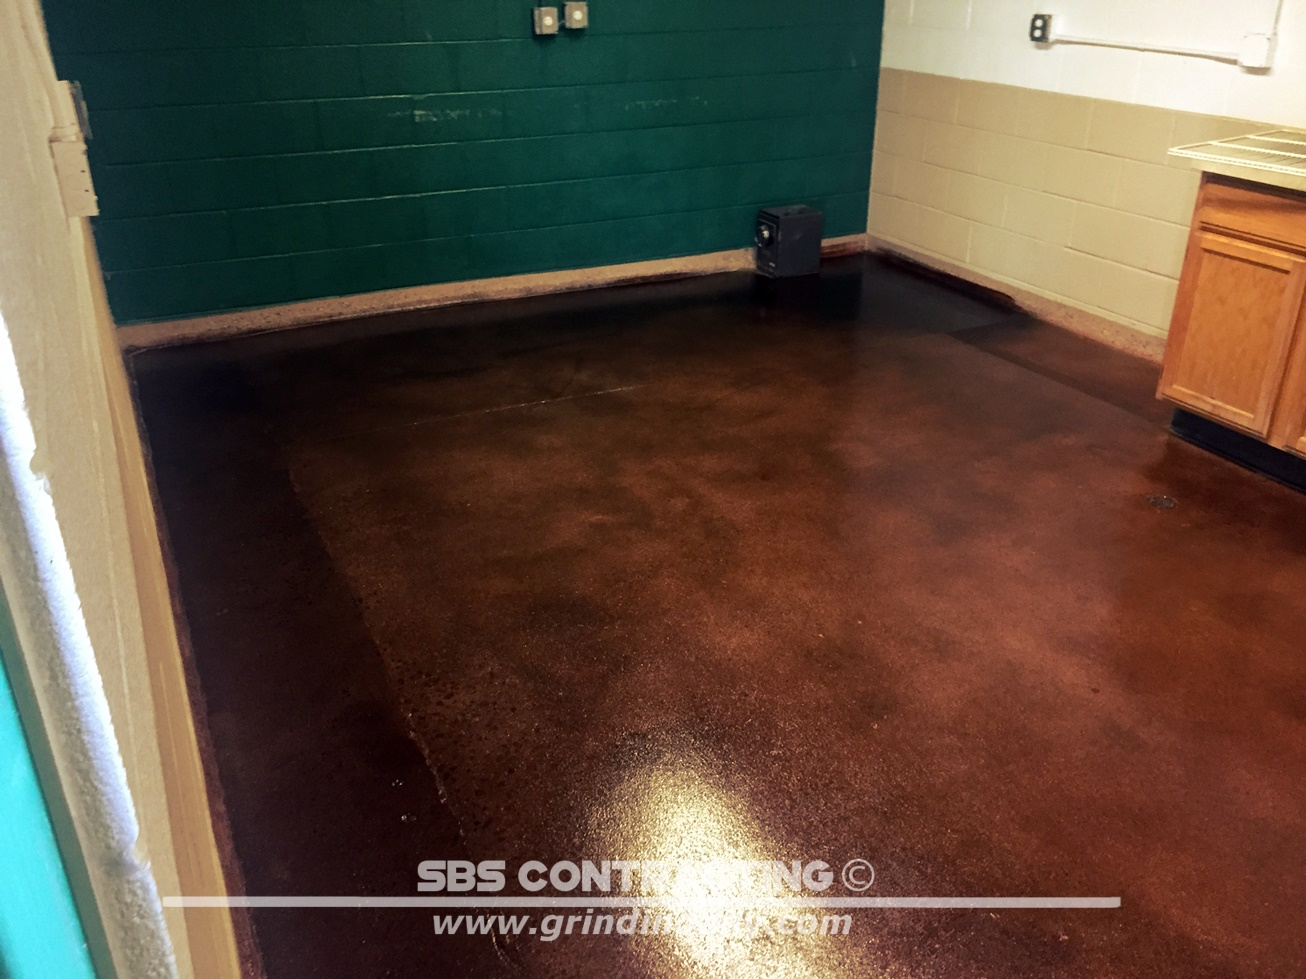 SBS-Contrating-Concrete-Stain-Project-09-02